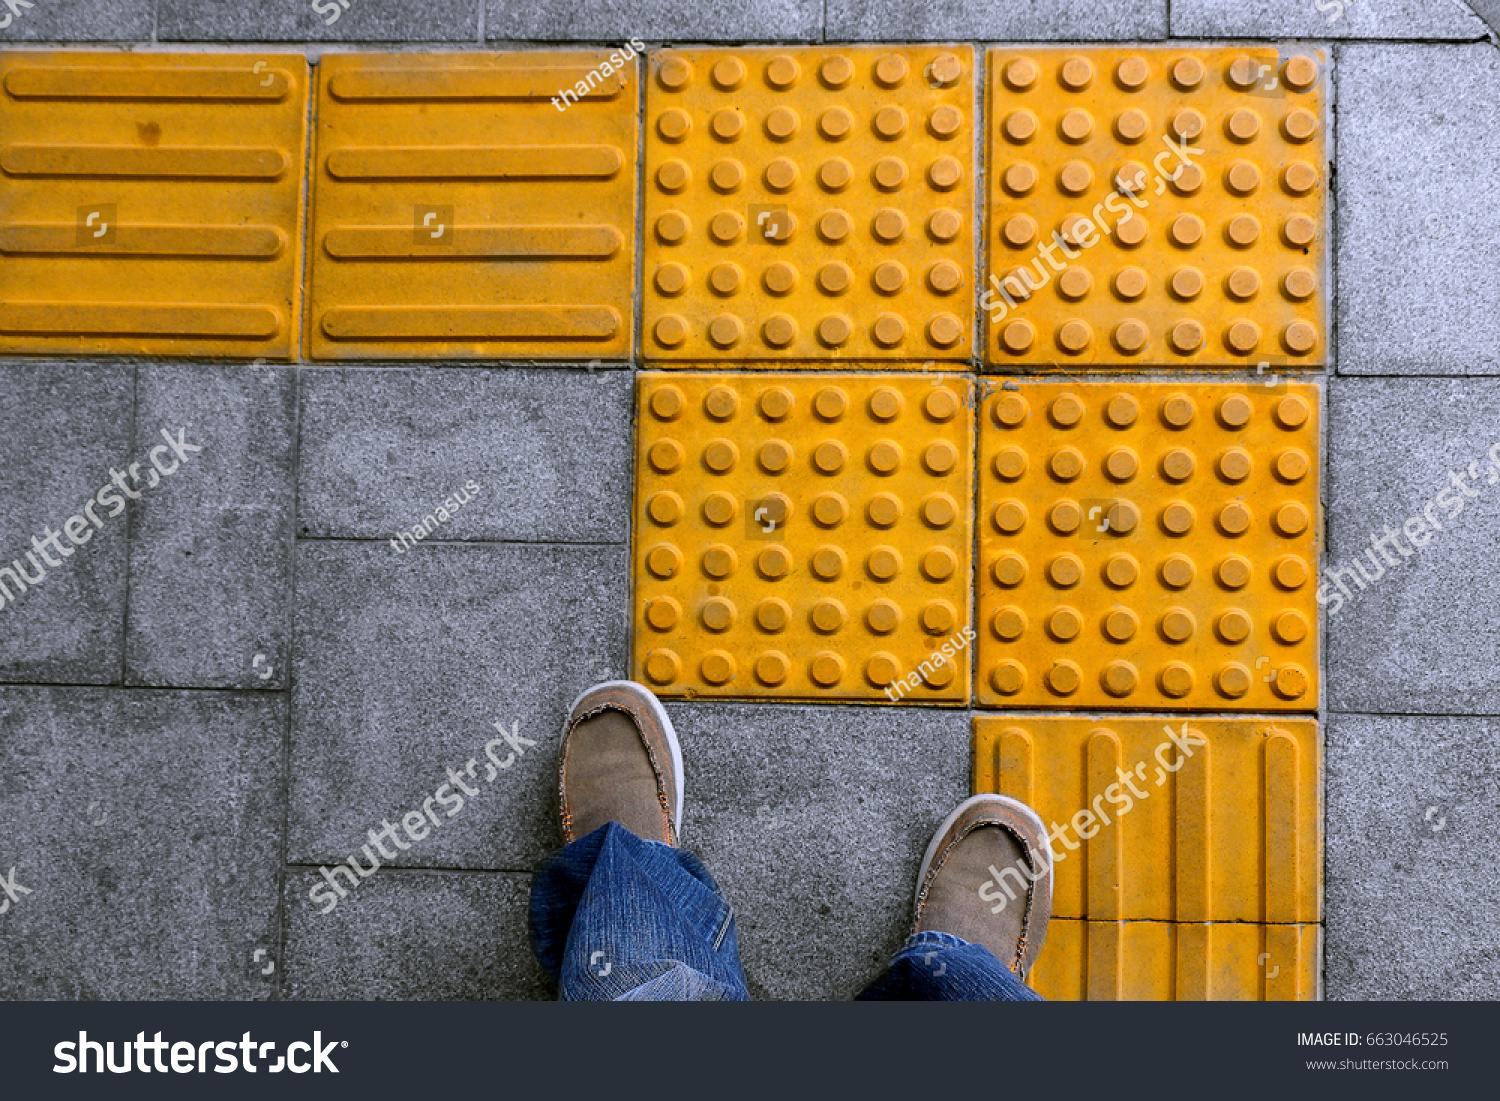 Shoes on block tactile paving blind stock photo 663046525 shoes on block tactile paving for blind handicap on tiles pathway walkway for blindness people dailygadgetfo Image collections